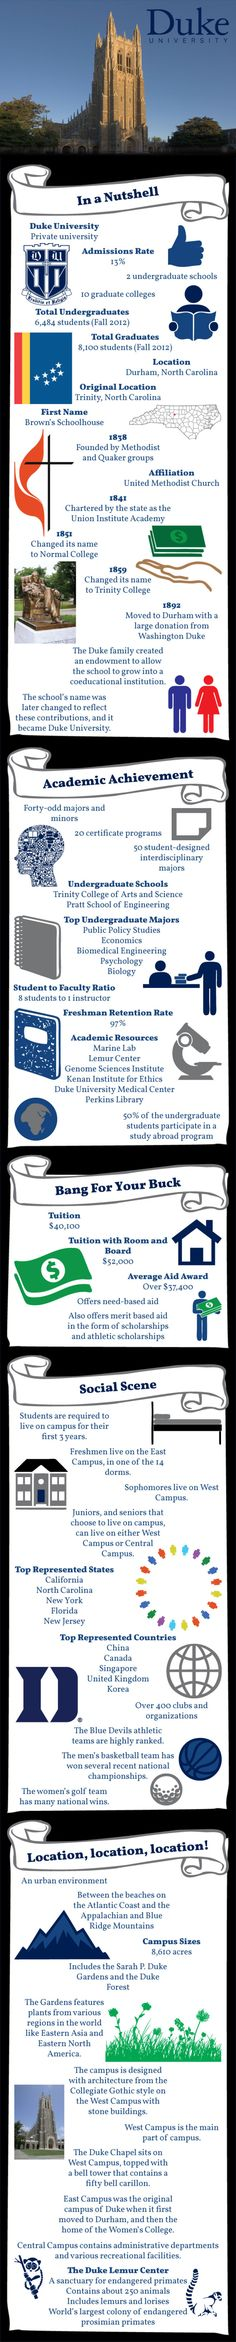 Duke University Infographic - A great model to serve as a basis for reports about other universities.